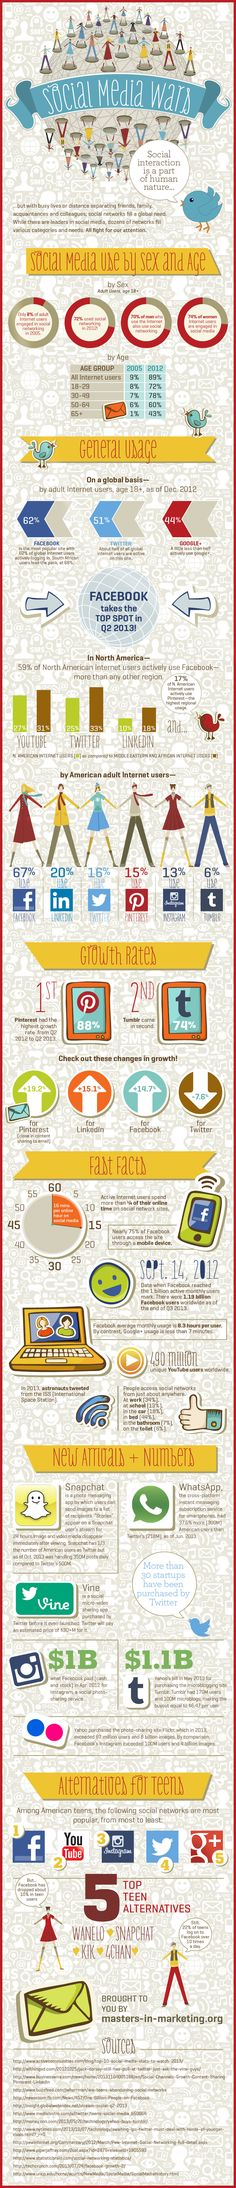 Social Media Wars. #SocialMedia #Infographic